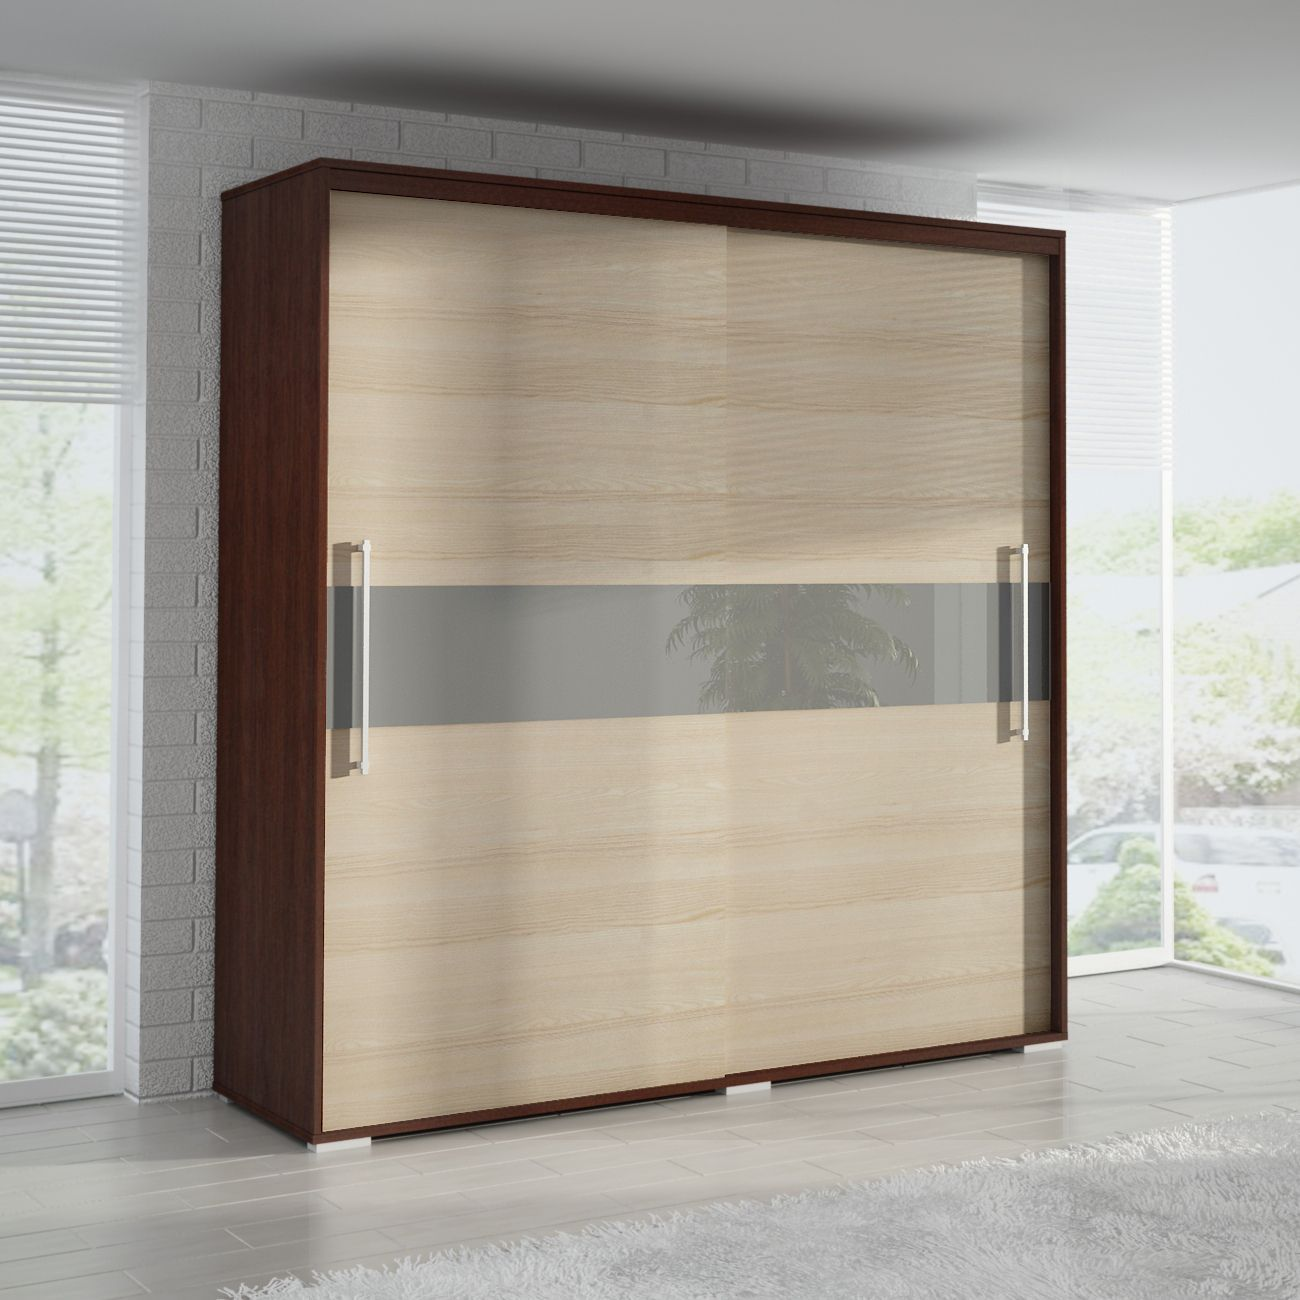 Wardrobe closet sliding door calegion master bedroom for Sliding entry doors